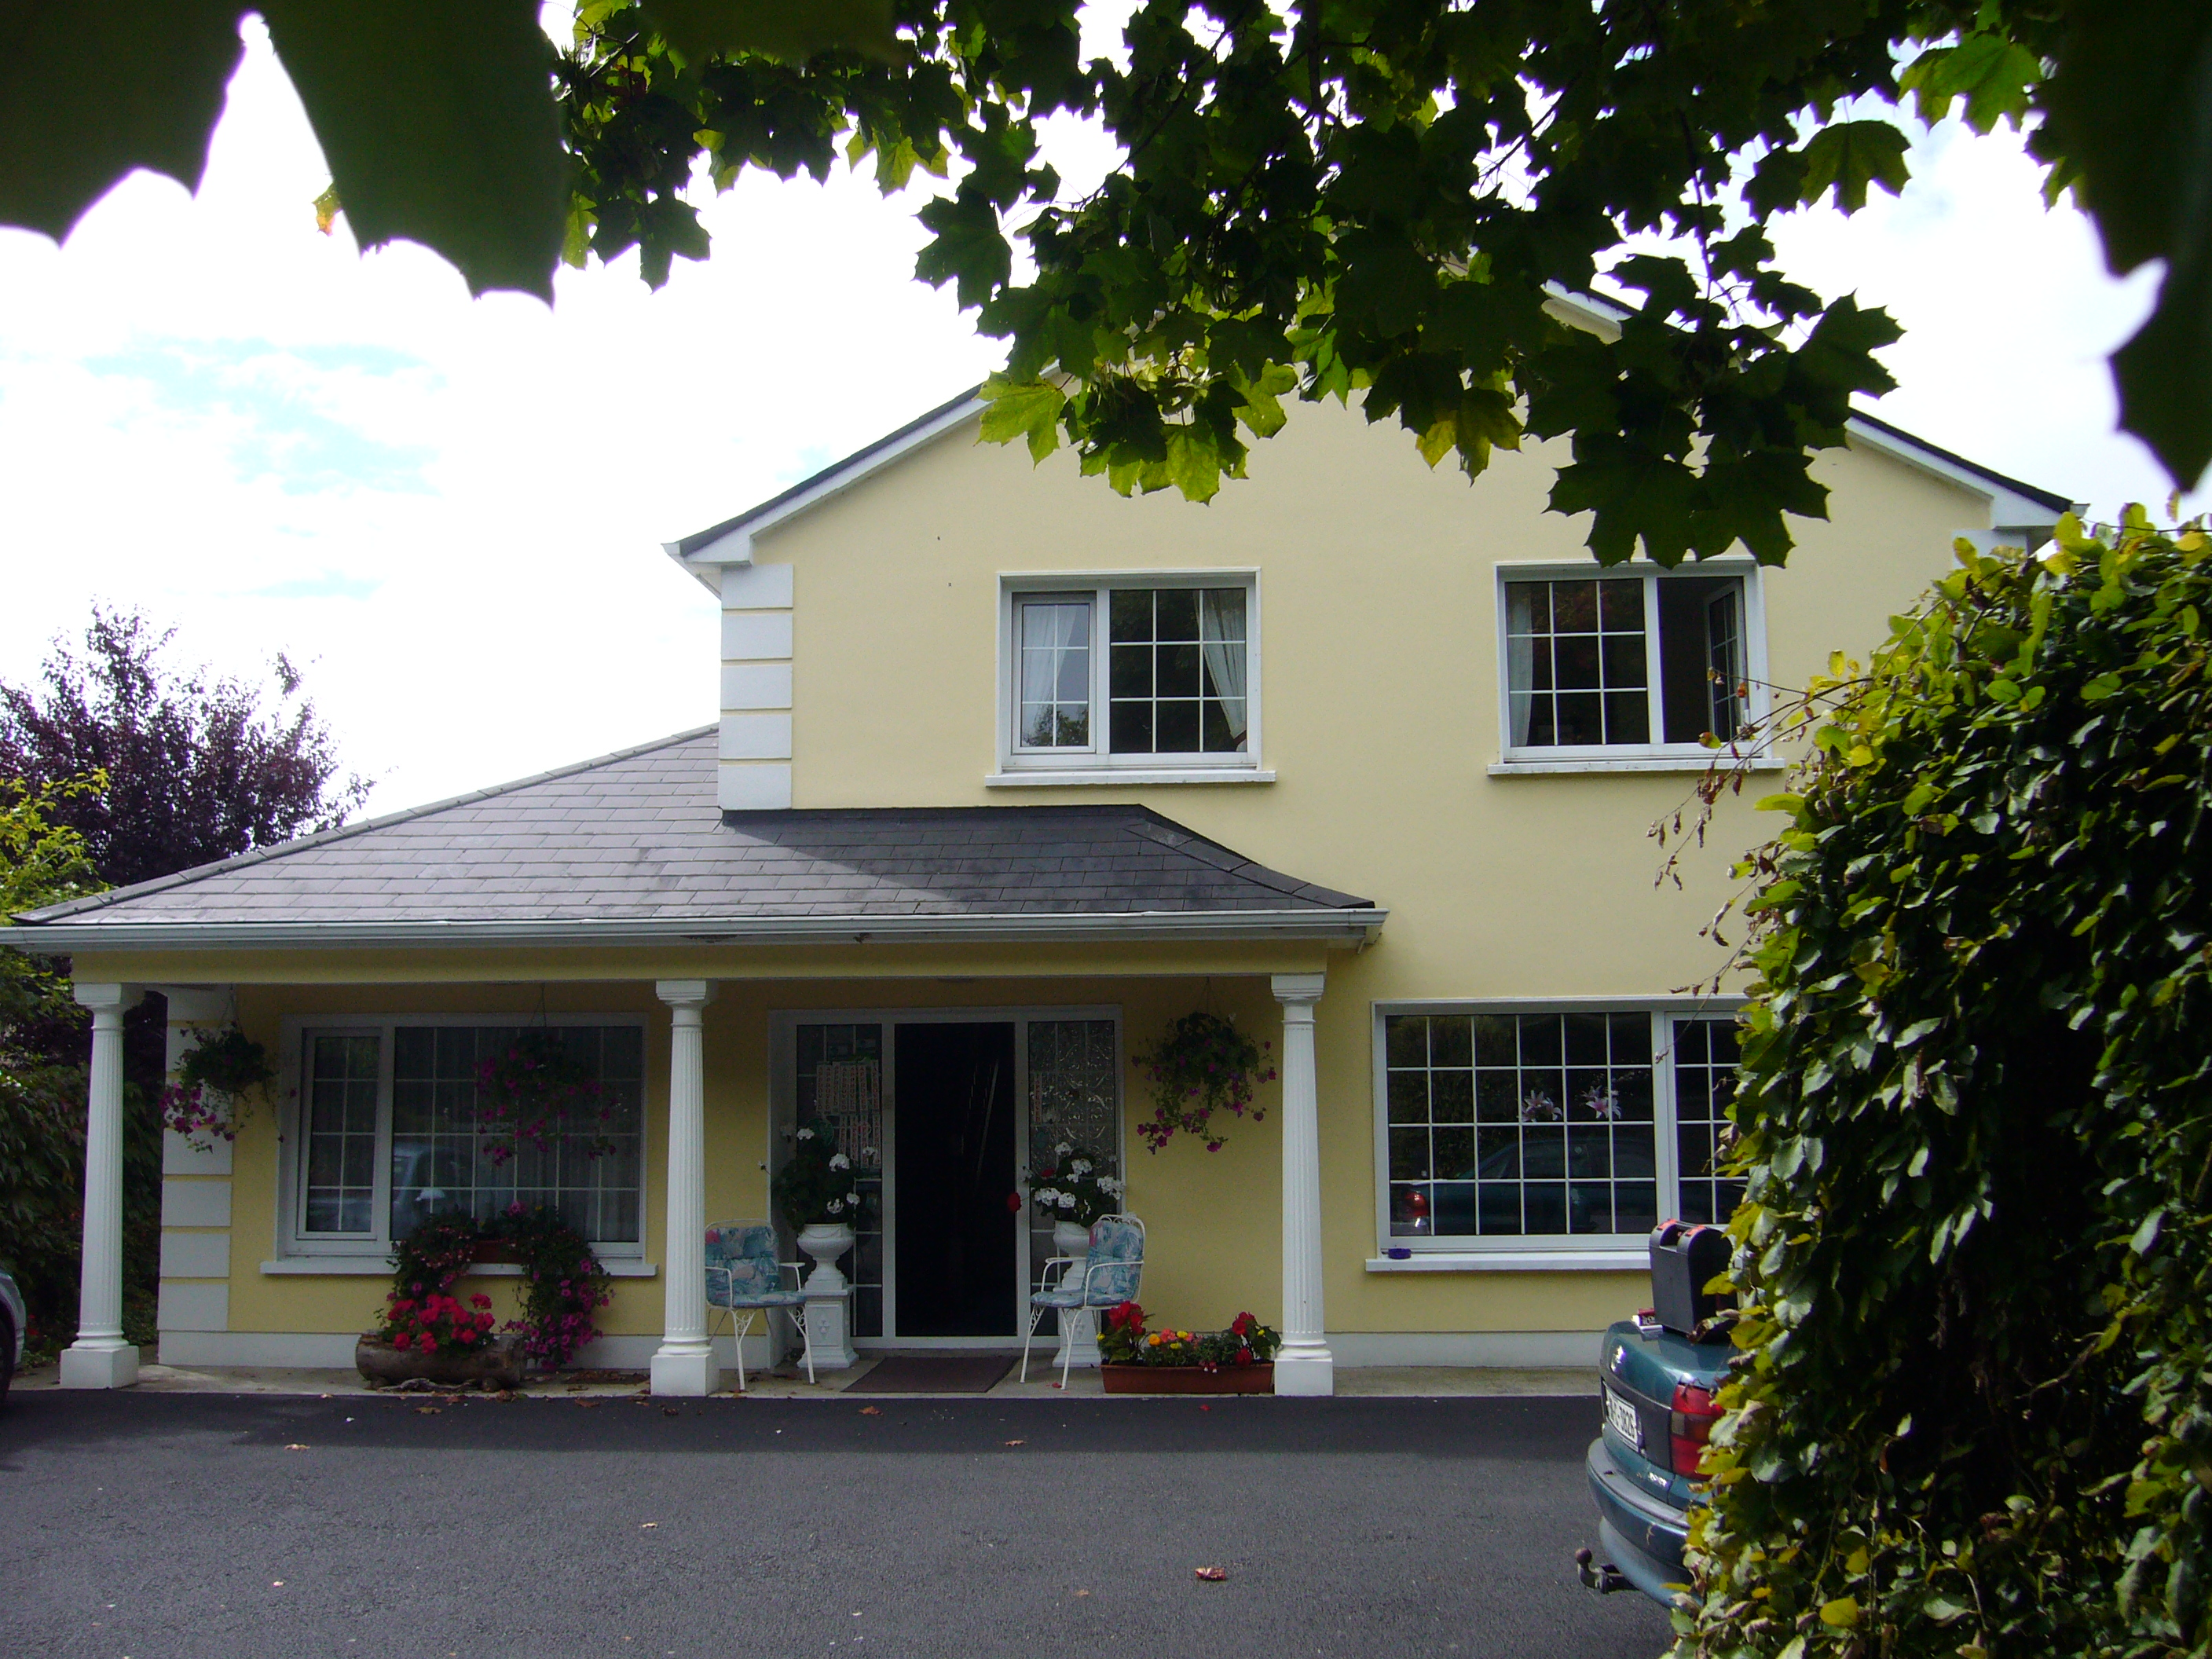 Rossarney Town House